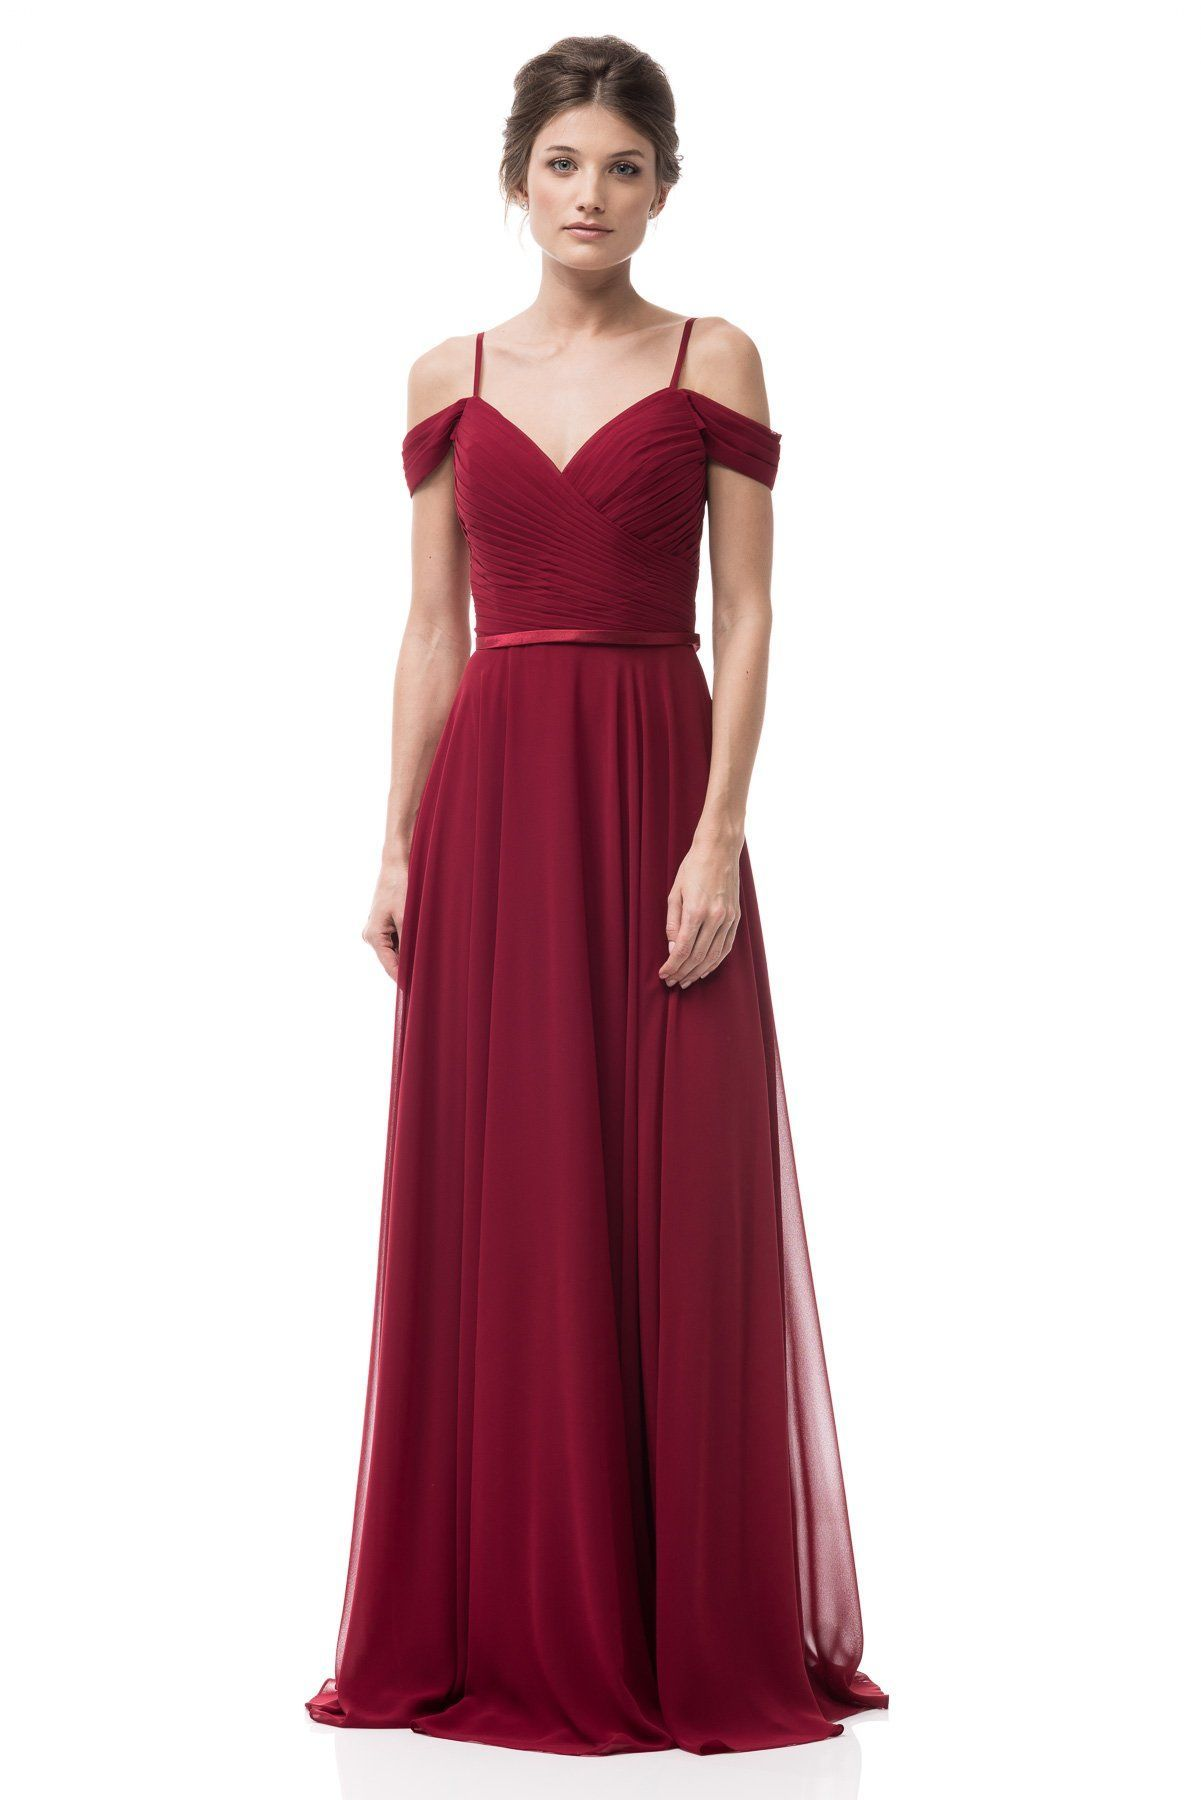 1decdff09d9d9 A-line crisscross sweetheart neckline Bridesmaid dress with delicate  spaghetti straps. Featuring satin accented waist. Soft gathers for extra  fullness and ...